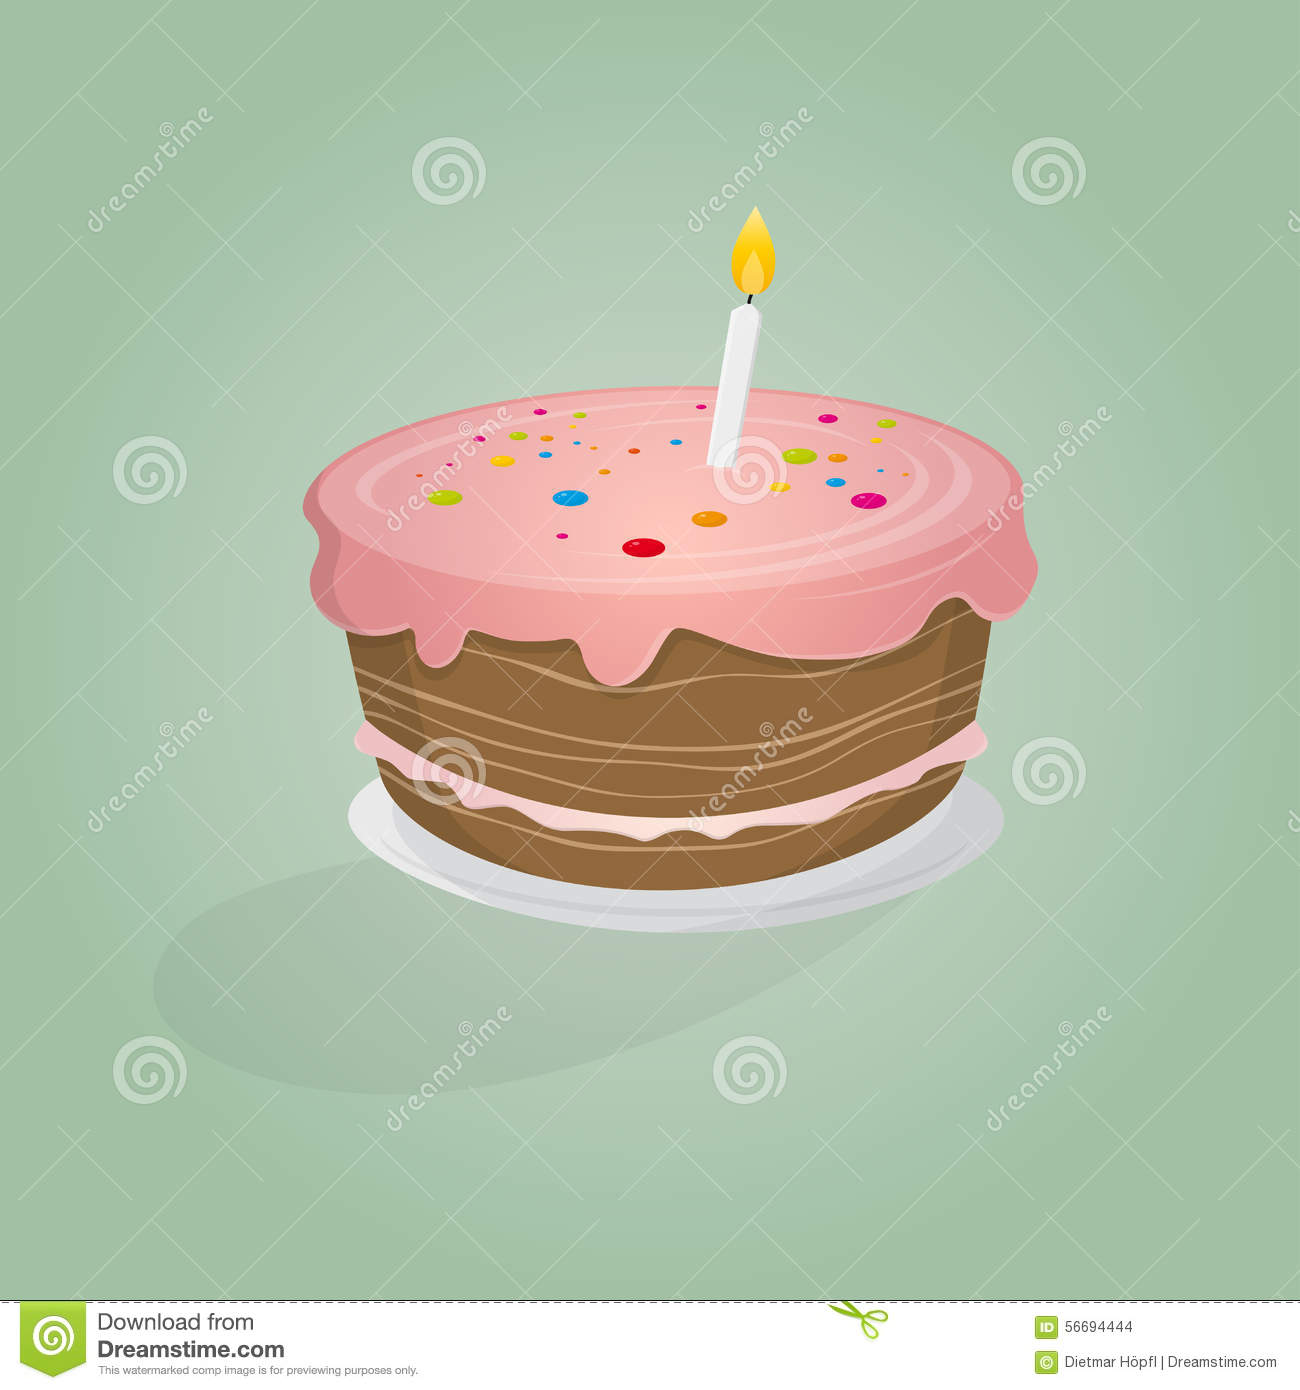 Birthday Cake Illustration Stock Vector - Image: 56694444